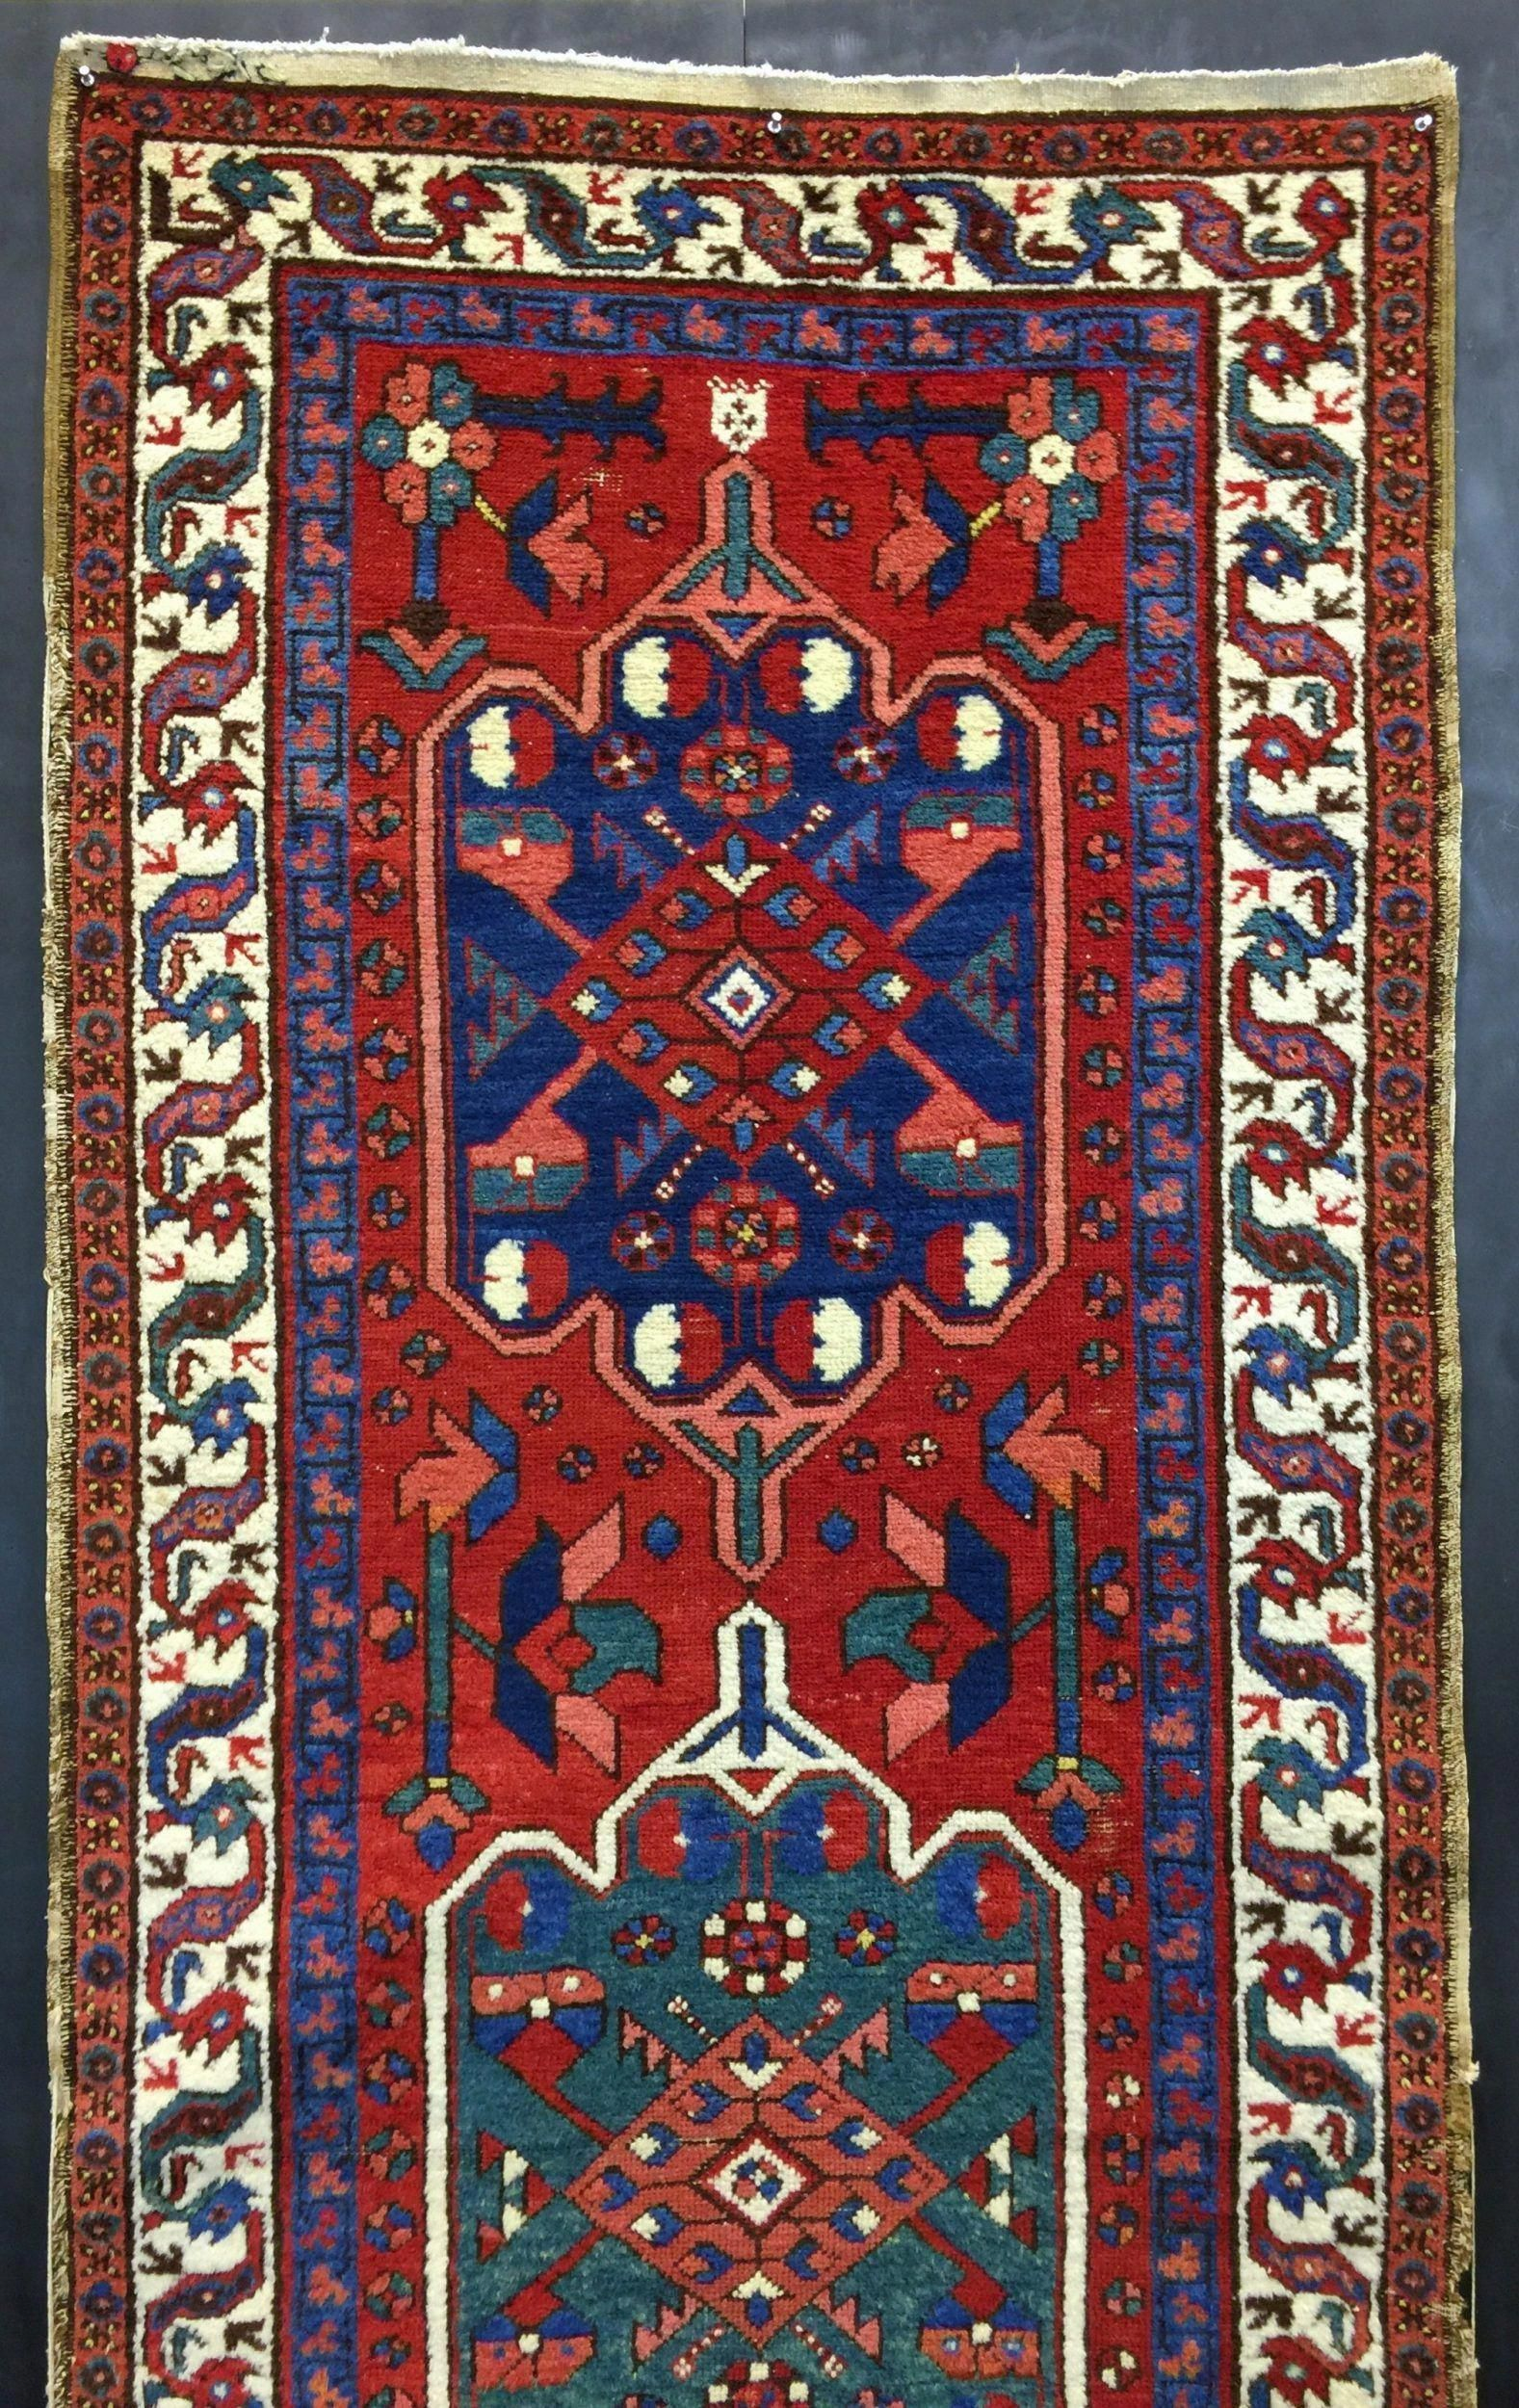 Discount Carpet Runners By The Foot Canyouwashcarpetrunners Product Id 7810192240 Rugs Rug Runner Rugs On Carpet